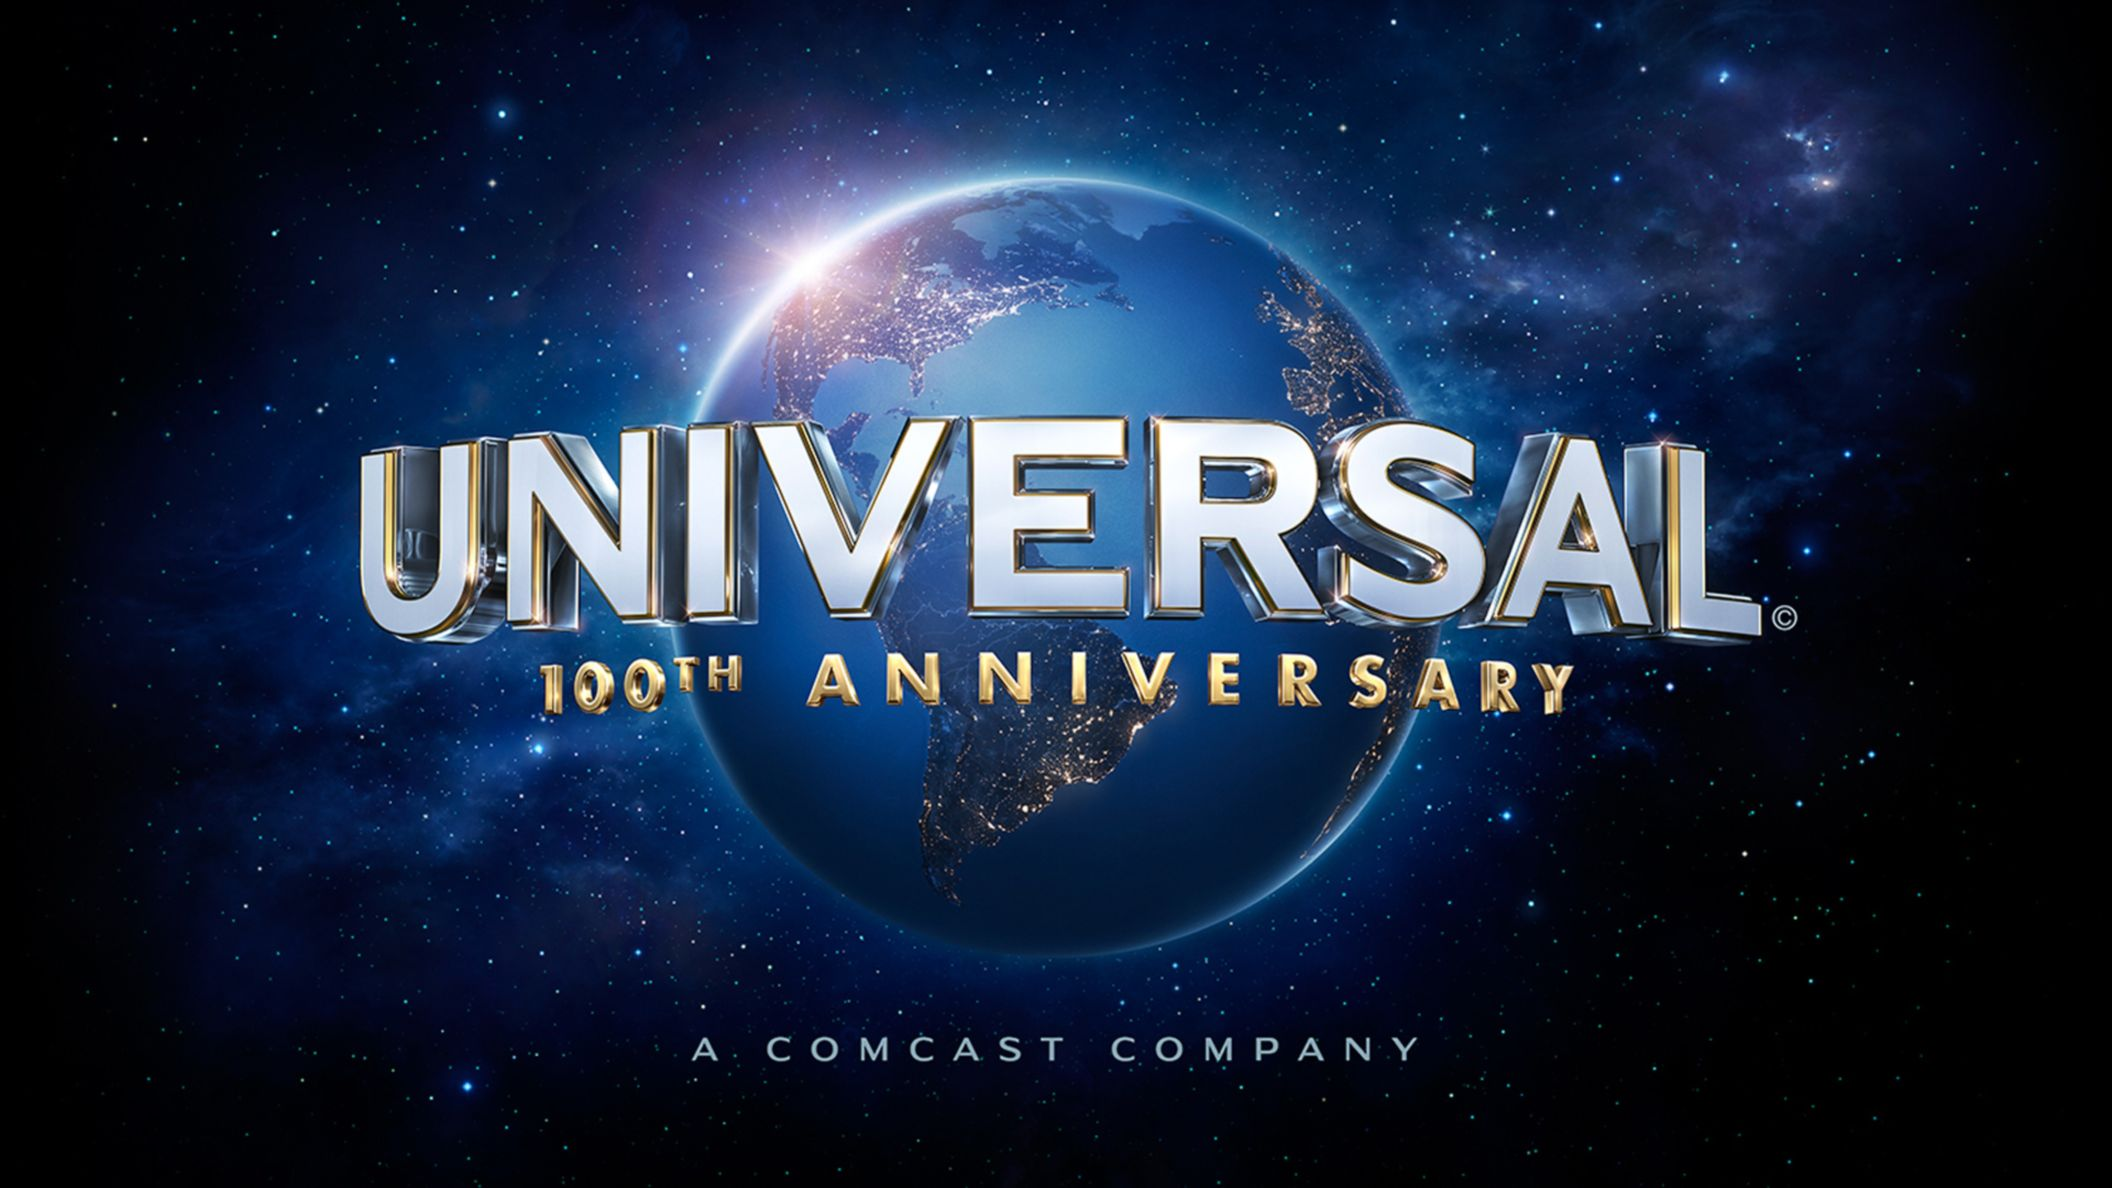 Download free HD Universal 100th Anniversary HD Wallpaper, image